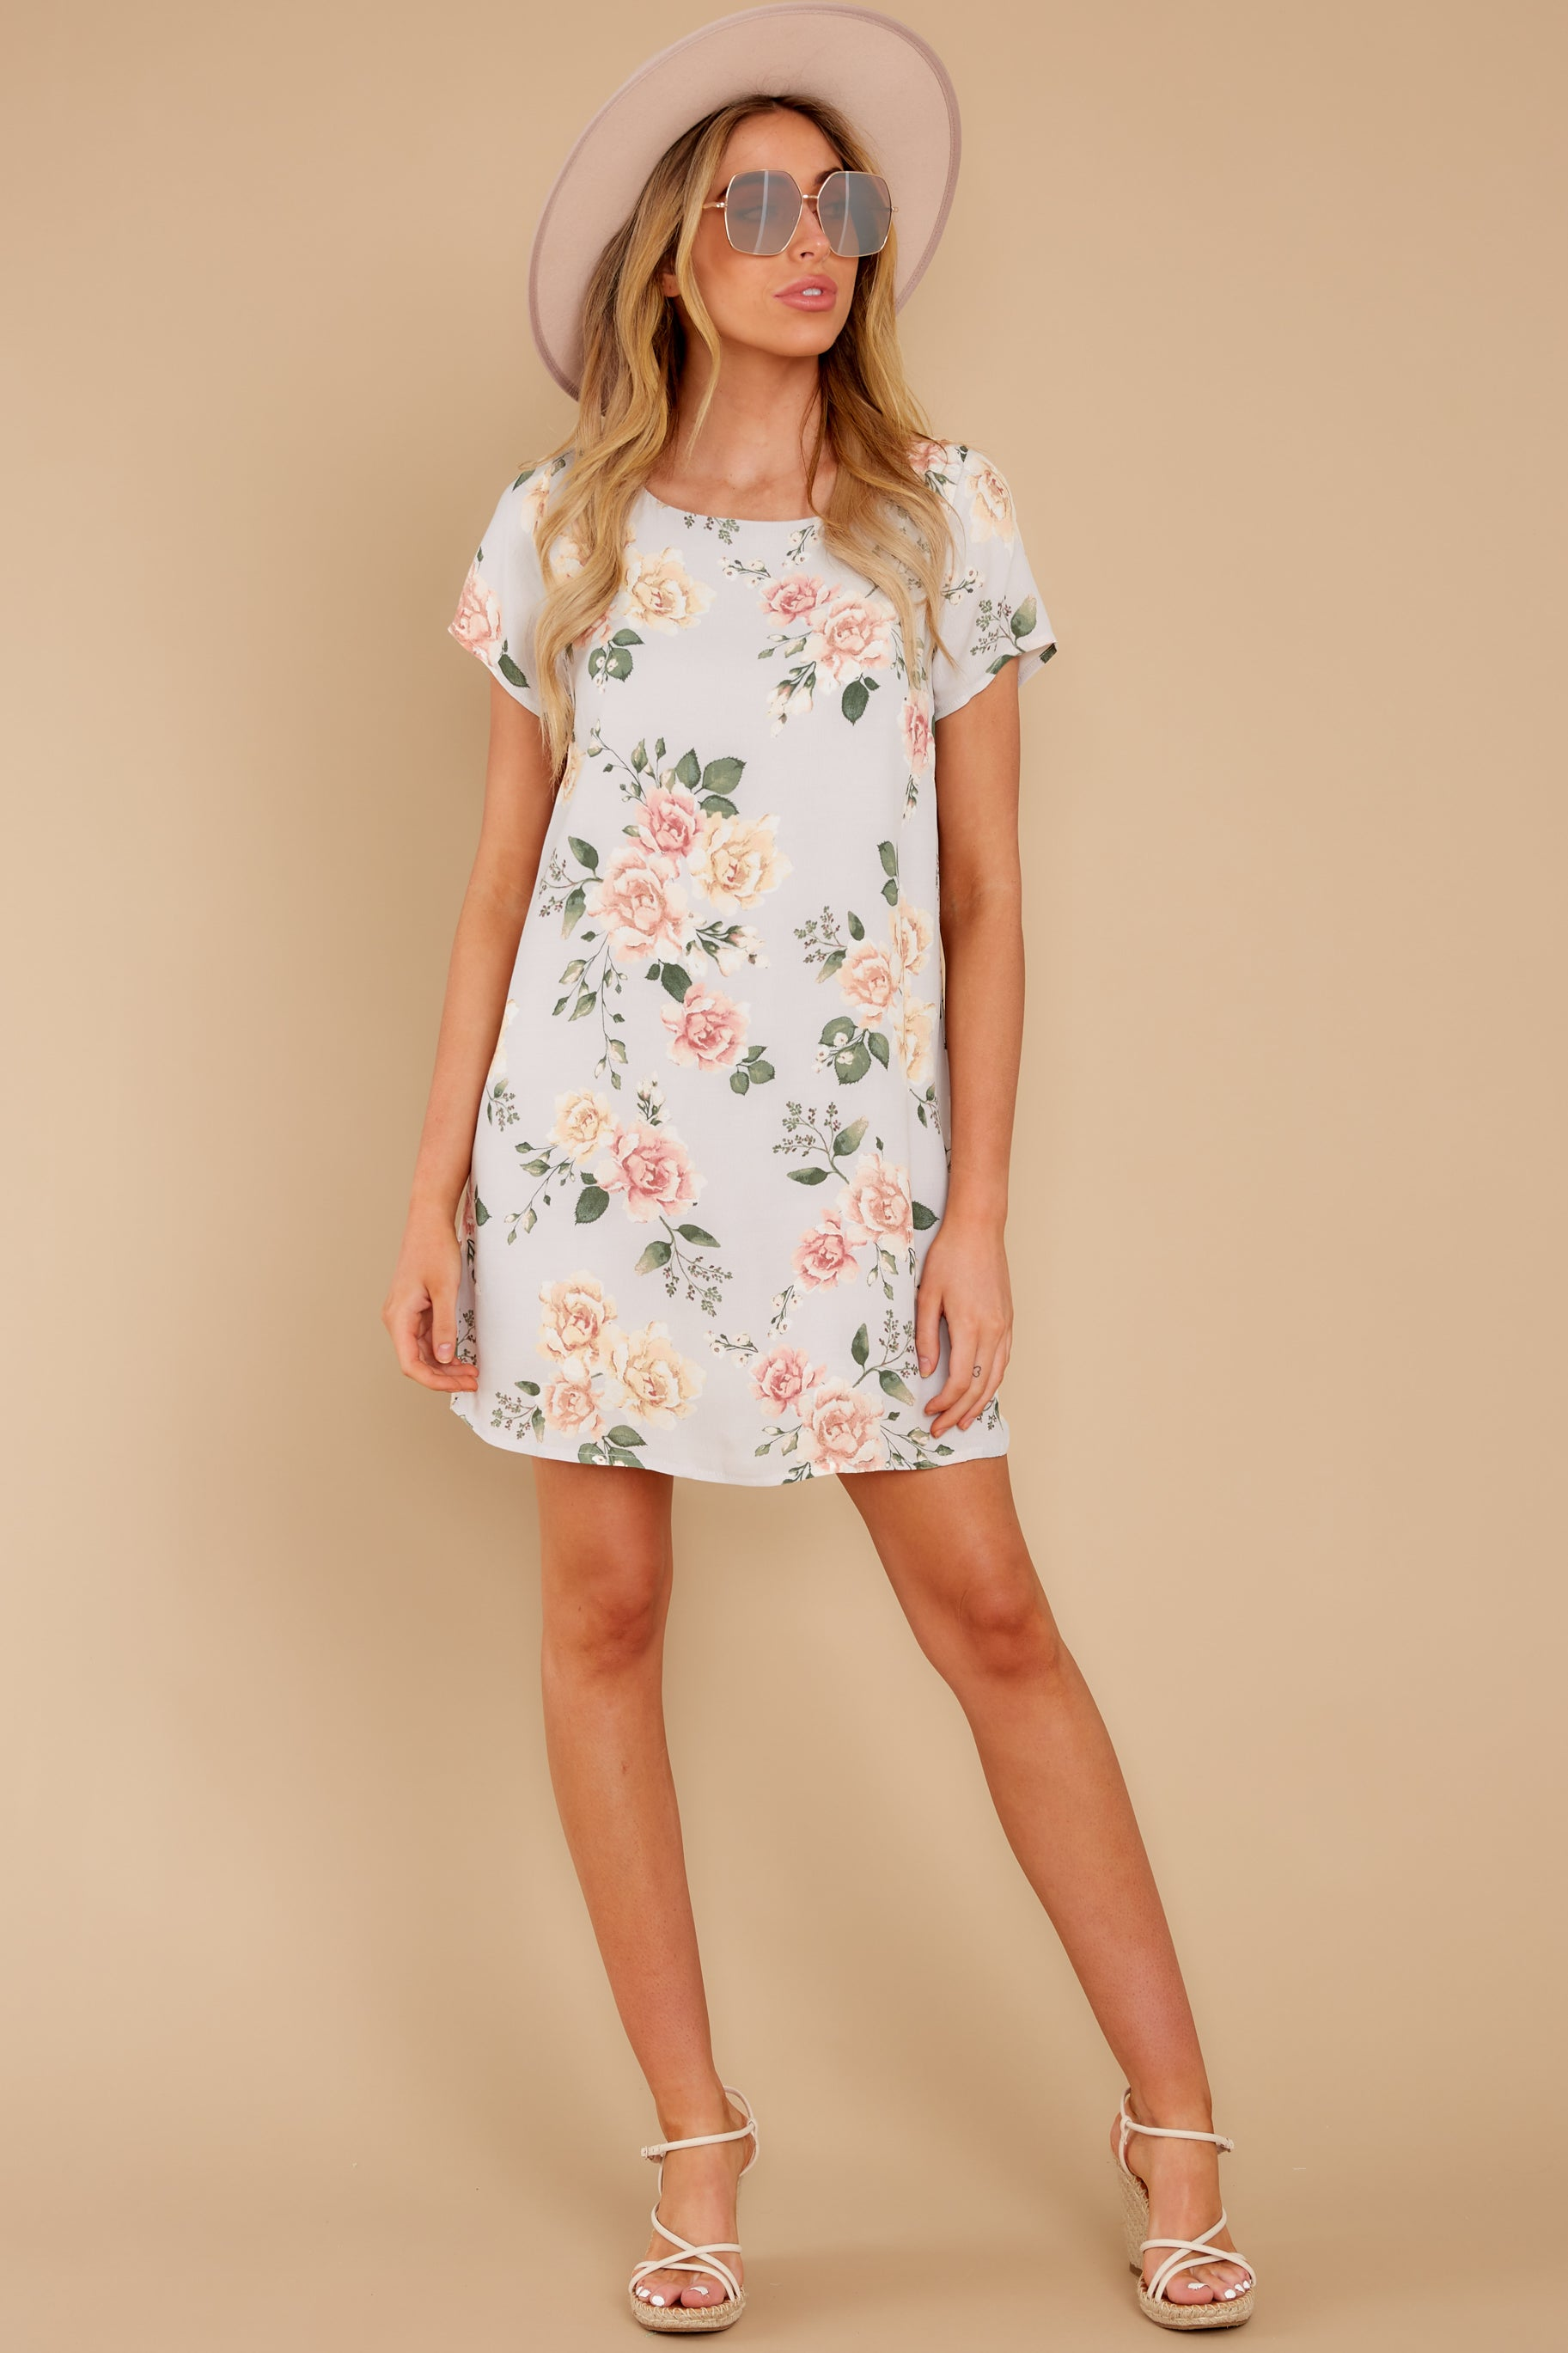 2 In The Rose Garden Lavender Floral Print Dress at reddress.com